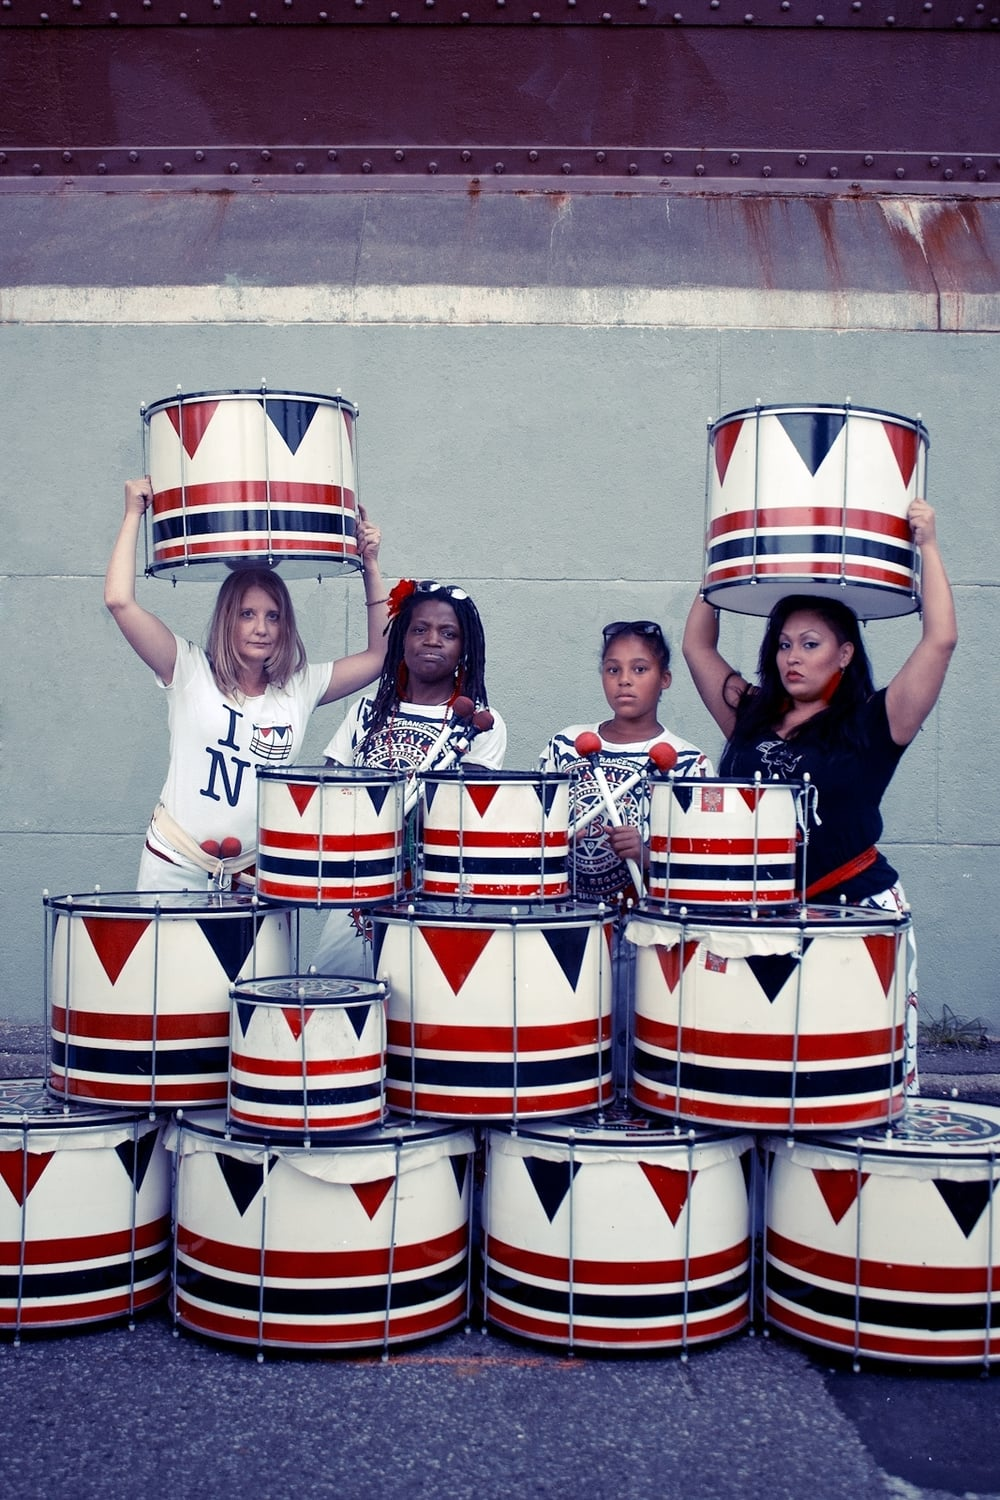 Batala photographed by Bex Wade